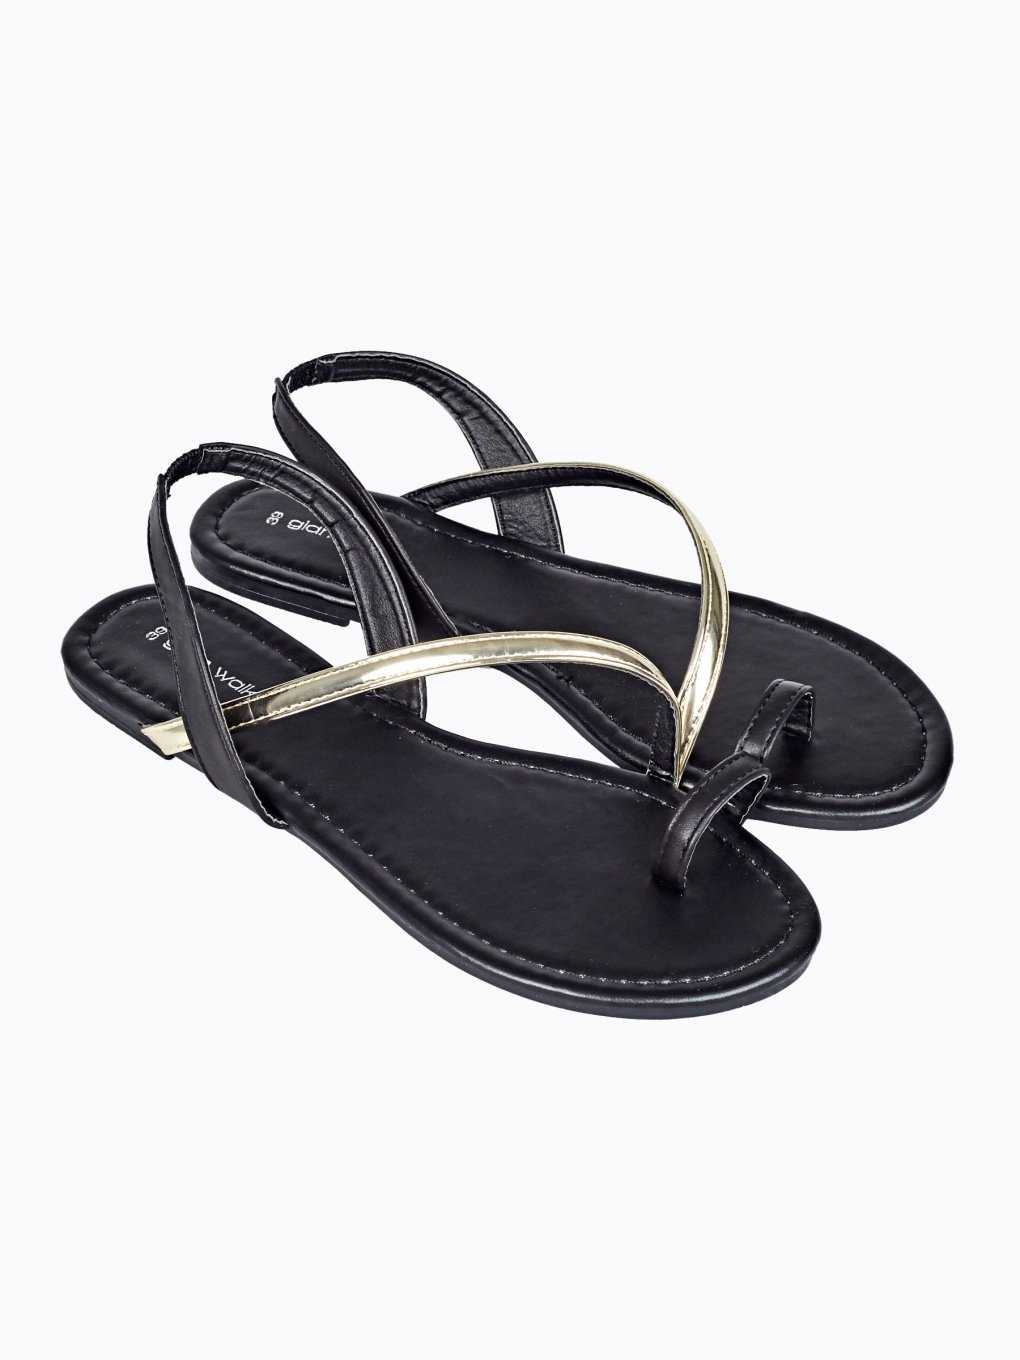 Sandals with metallic strap